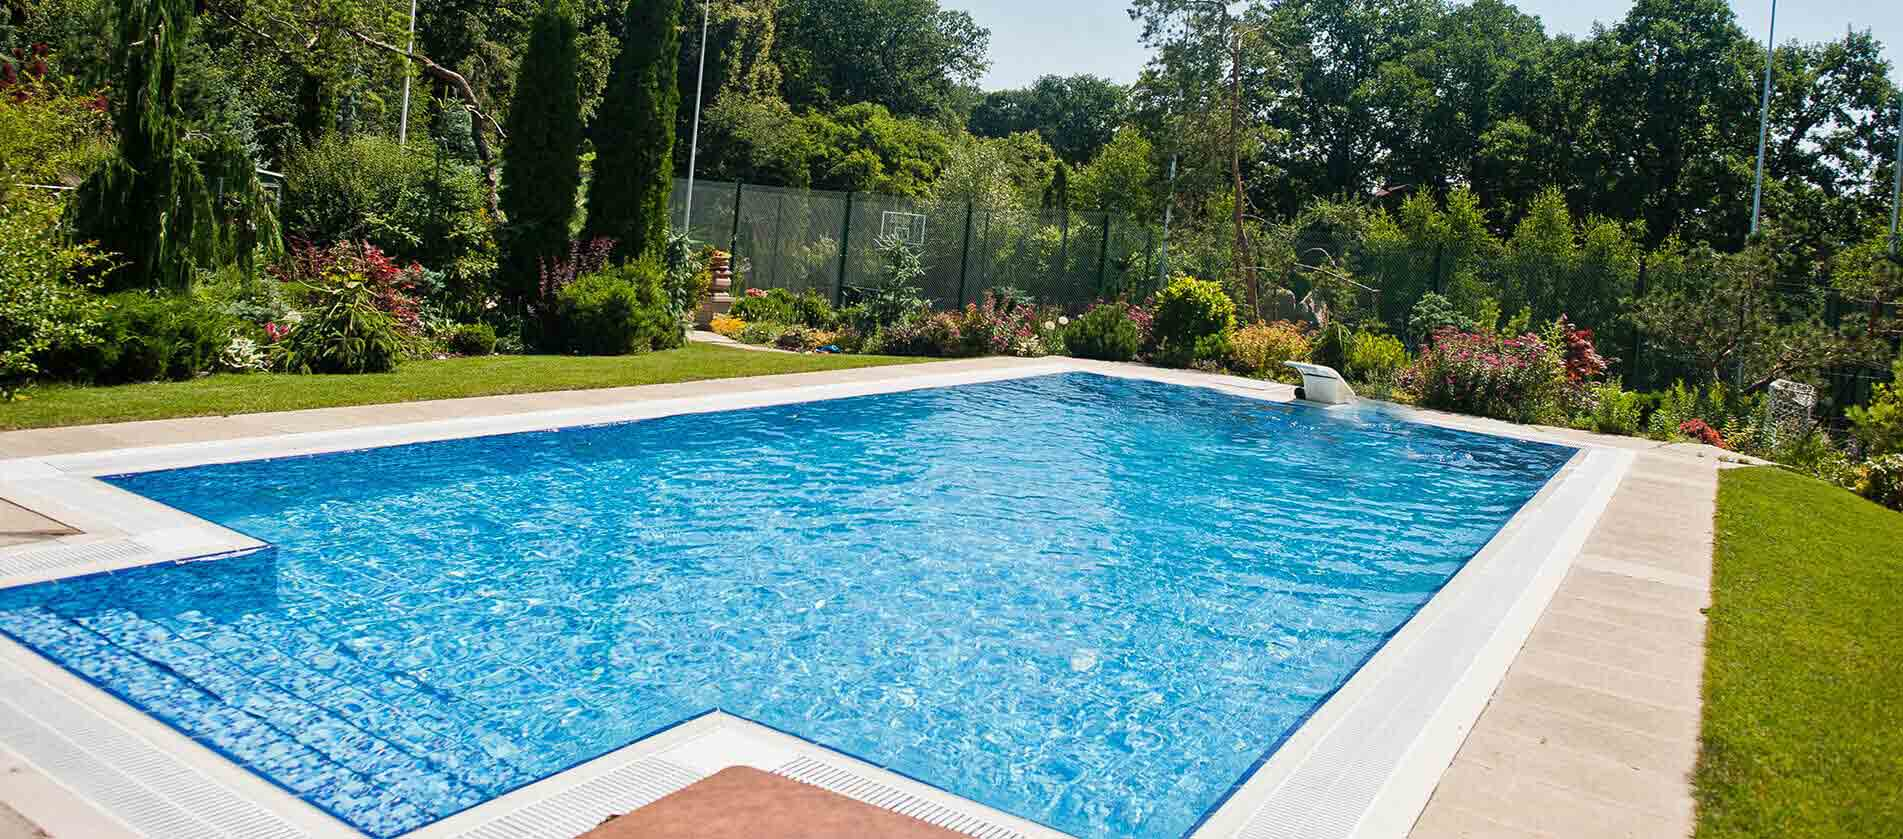 Monarch Pools & Spas | Totowa, NJ | Swimming Pool Contractor